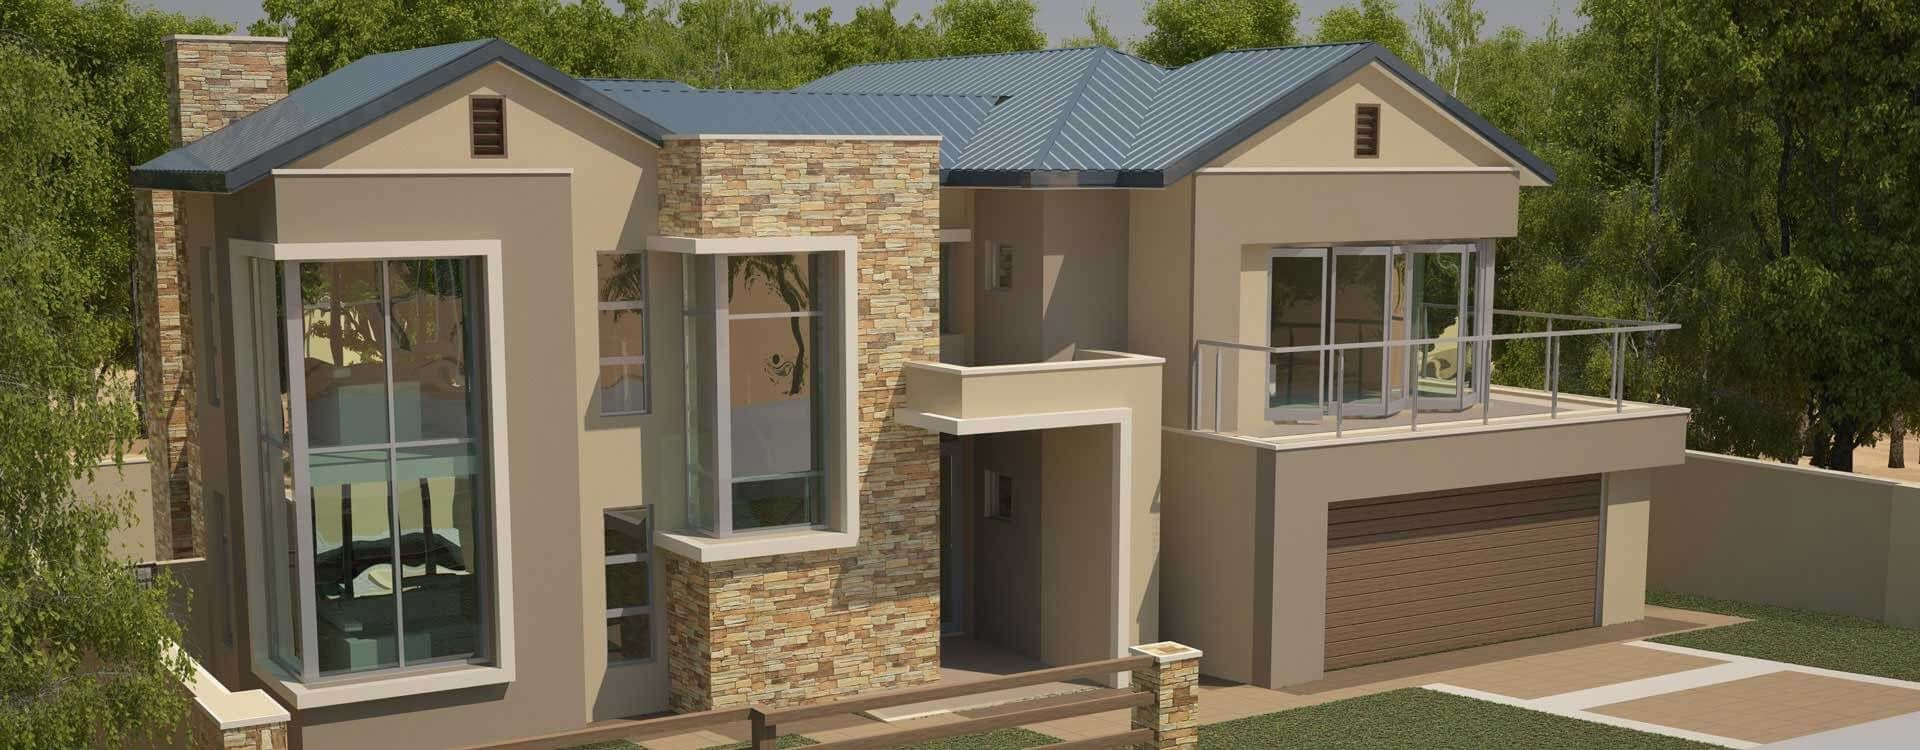 House Plans South Africa Double Storey Houses Bedroom